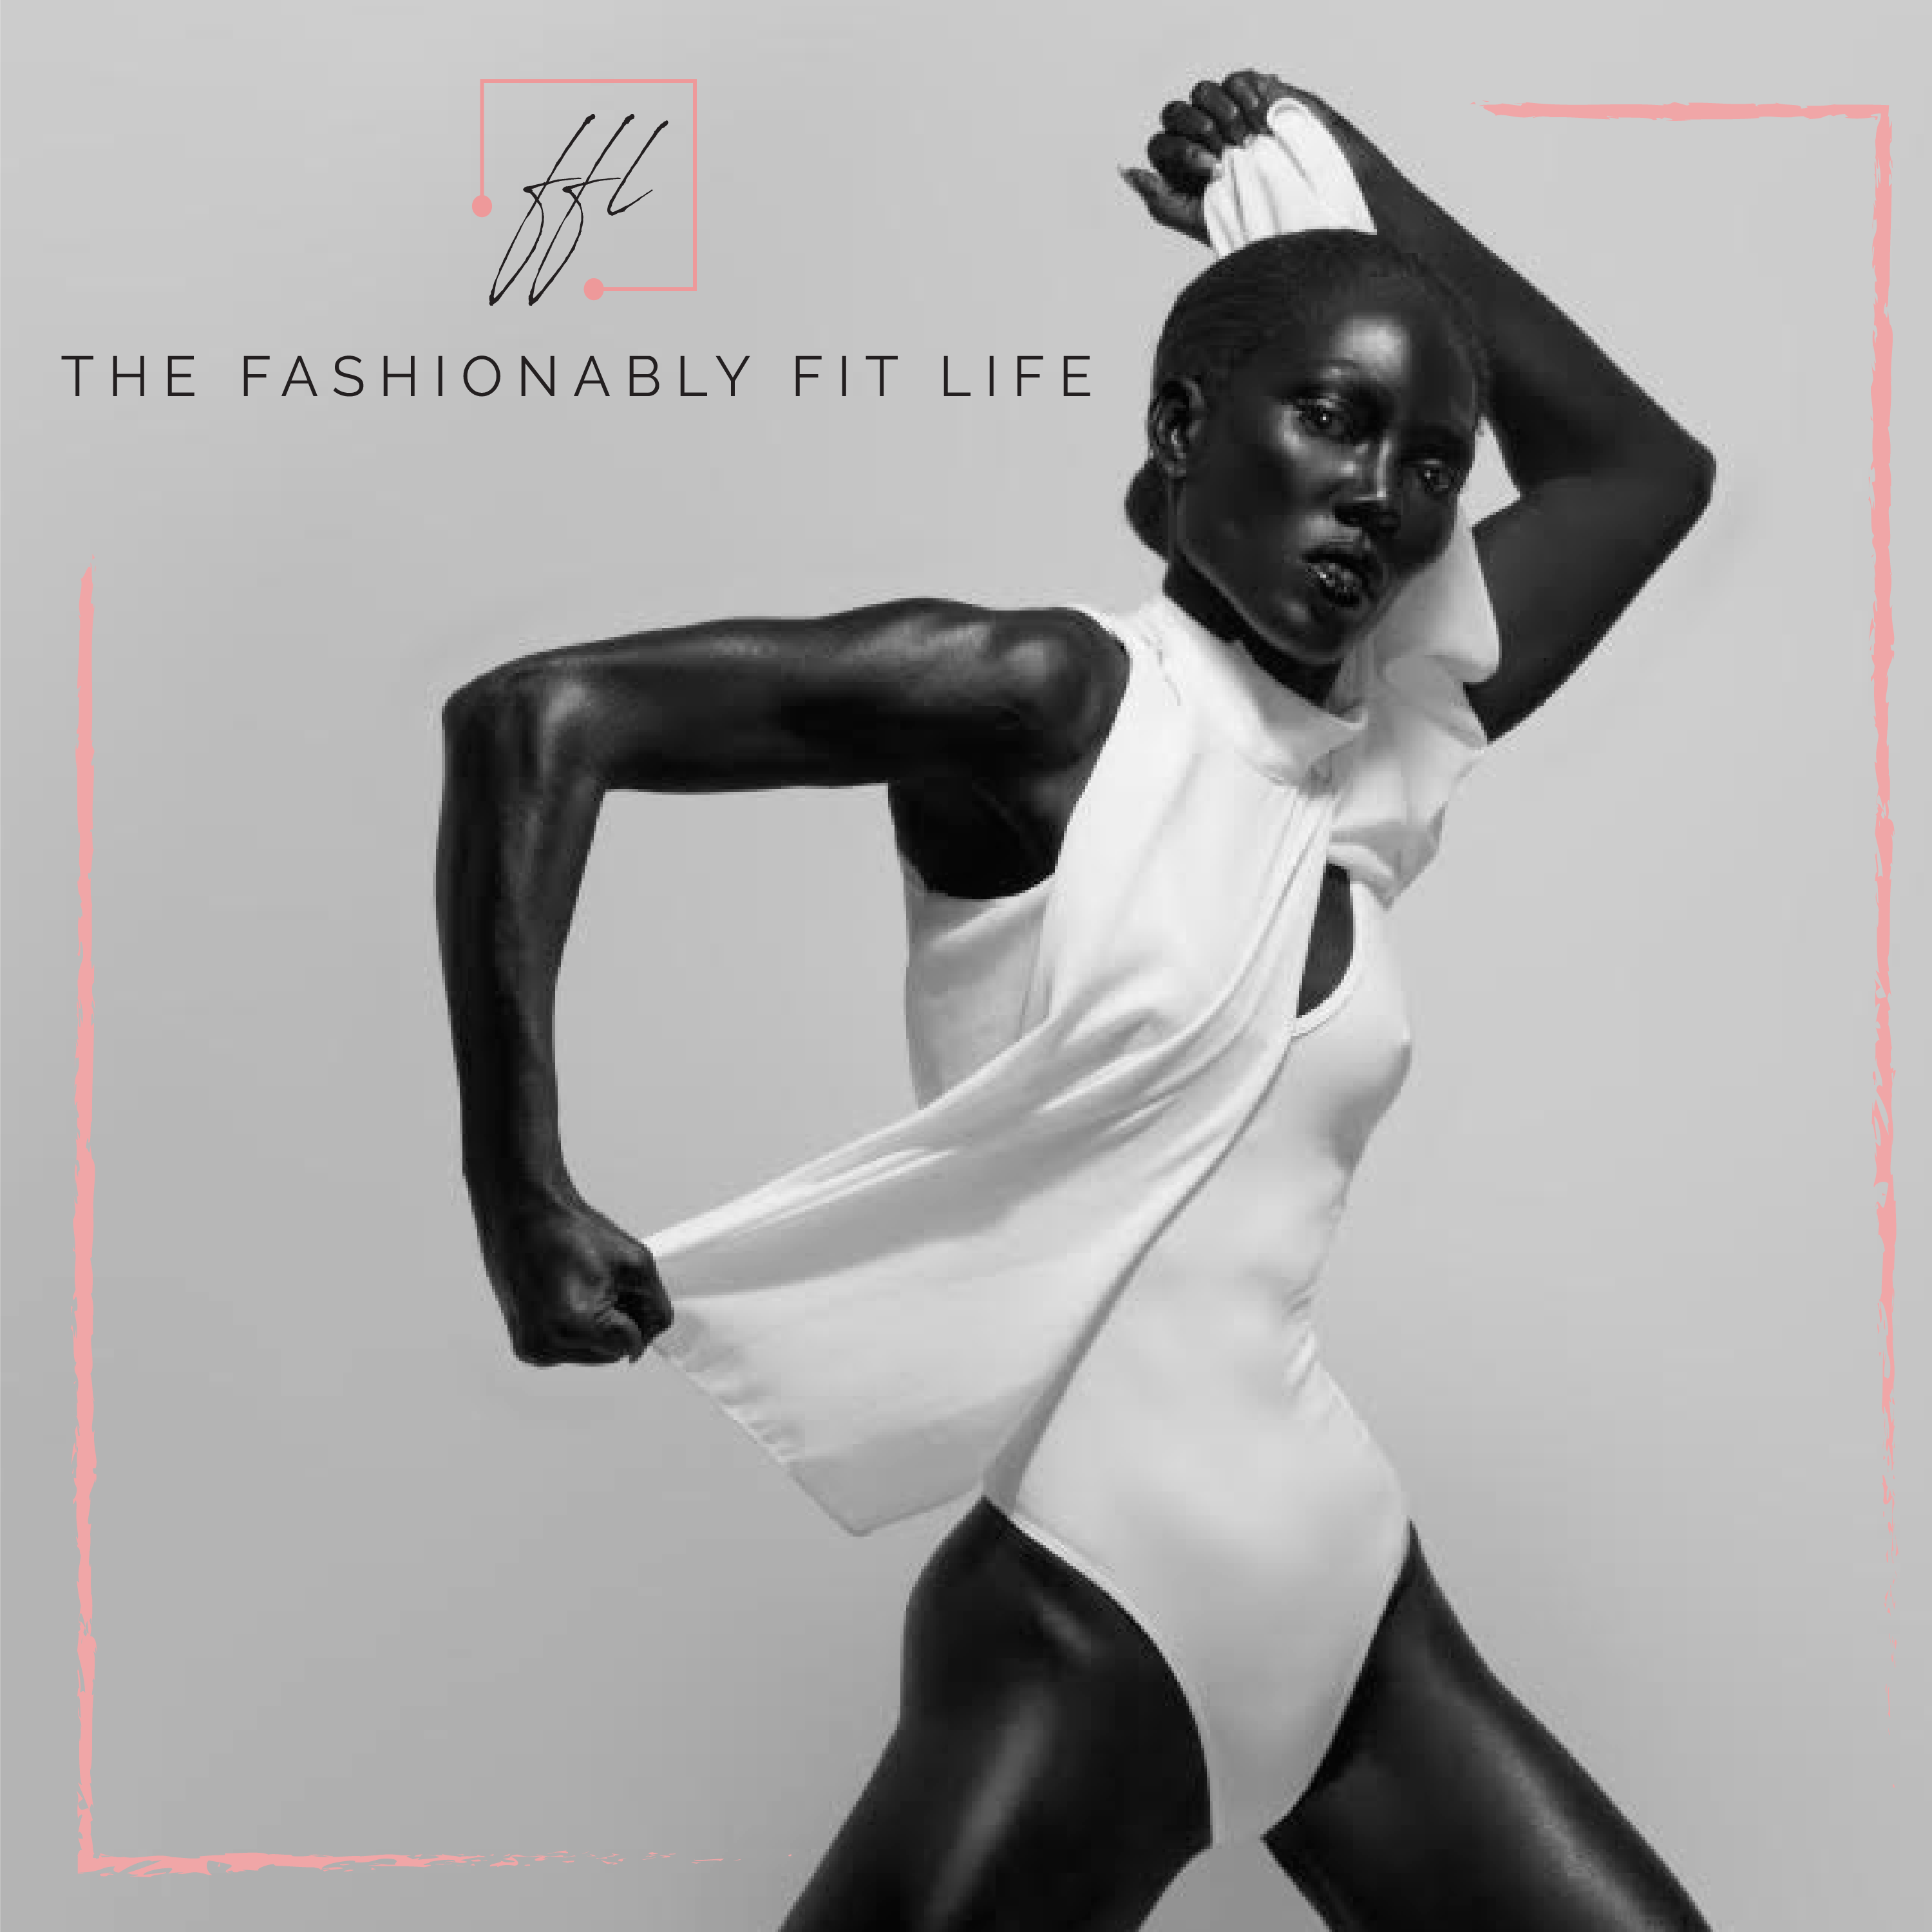 The Fashionably Fit Life